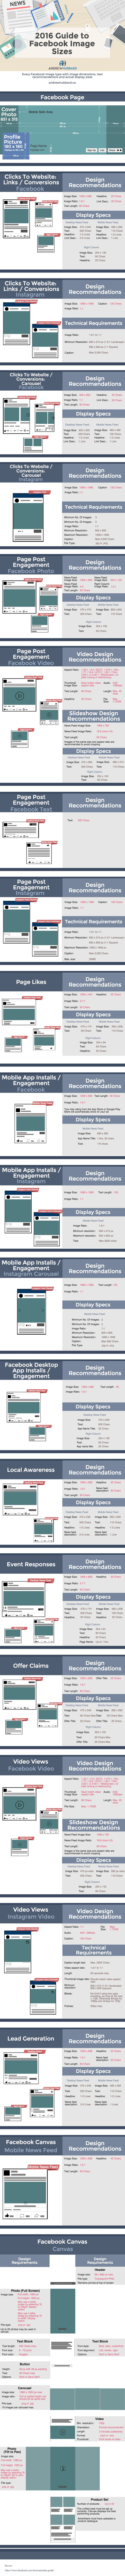 Here's a handy infographic that shows you the recommended image sizes for all Facebook and Instagram ads. It's brand new for 2016 and includes all of the new ad types including Lead Ads and Facebook Canvas!